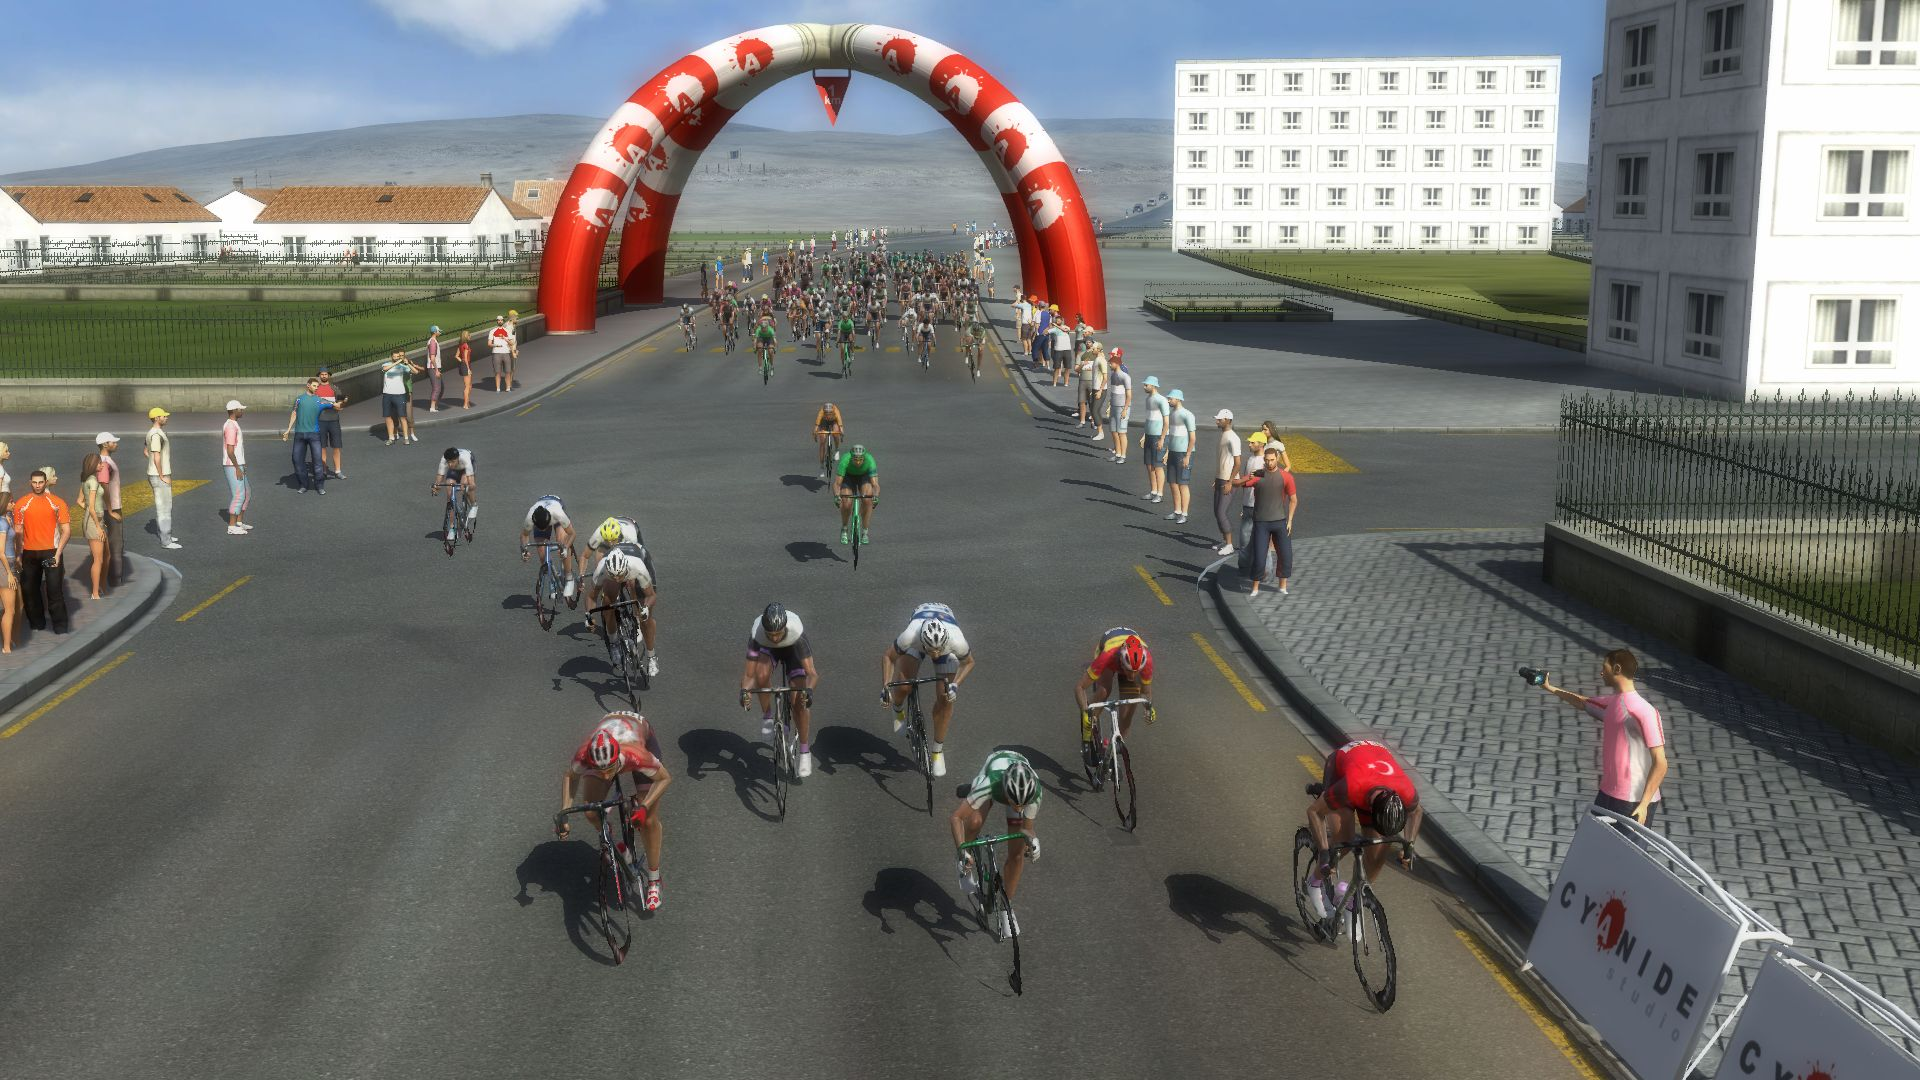 pcmdaily.com/images/mg/2019/Races/C2HC/Eritrea/TOES1%2018.jpg